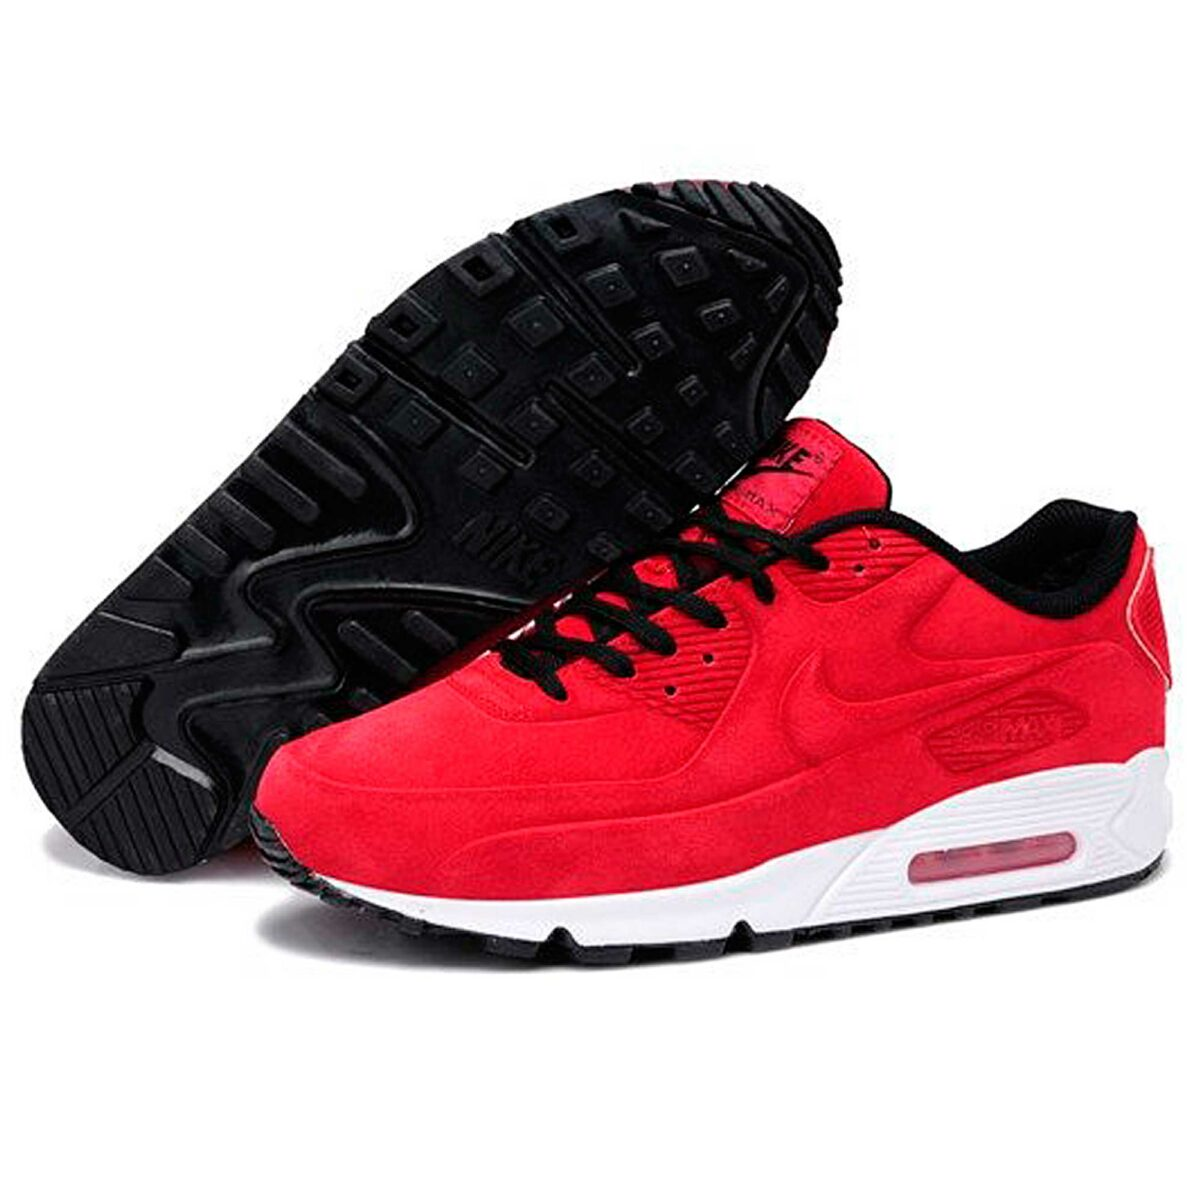 nike air max 90 vt red winter купить